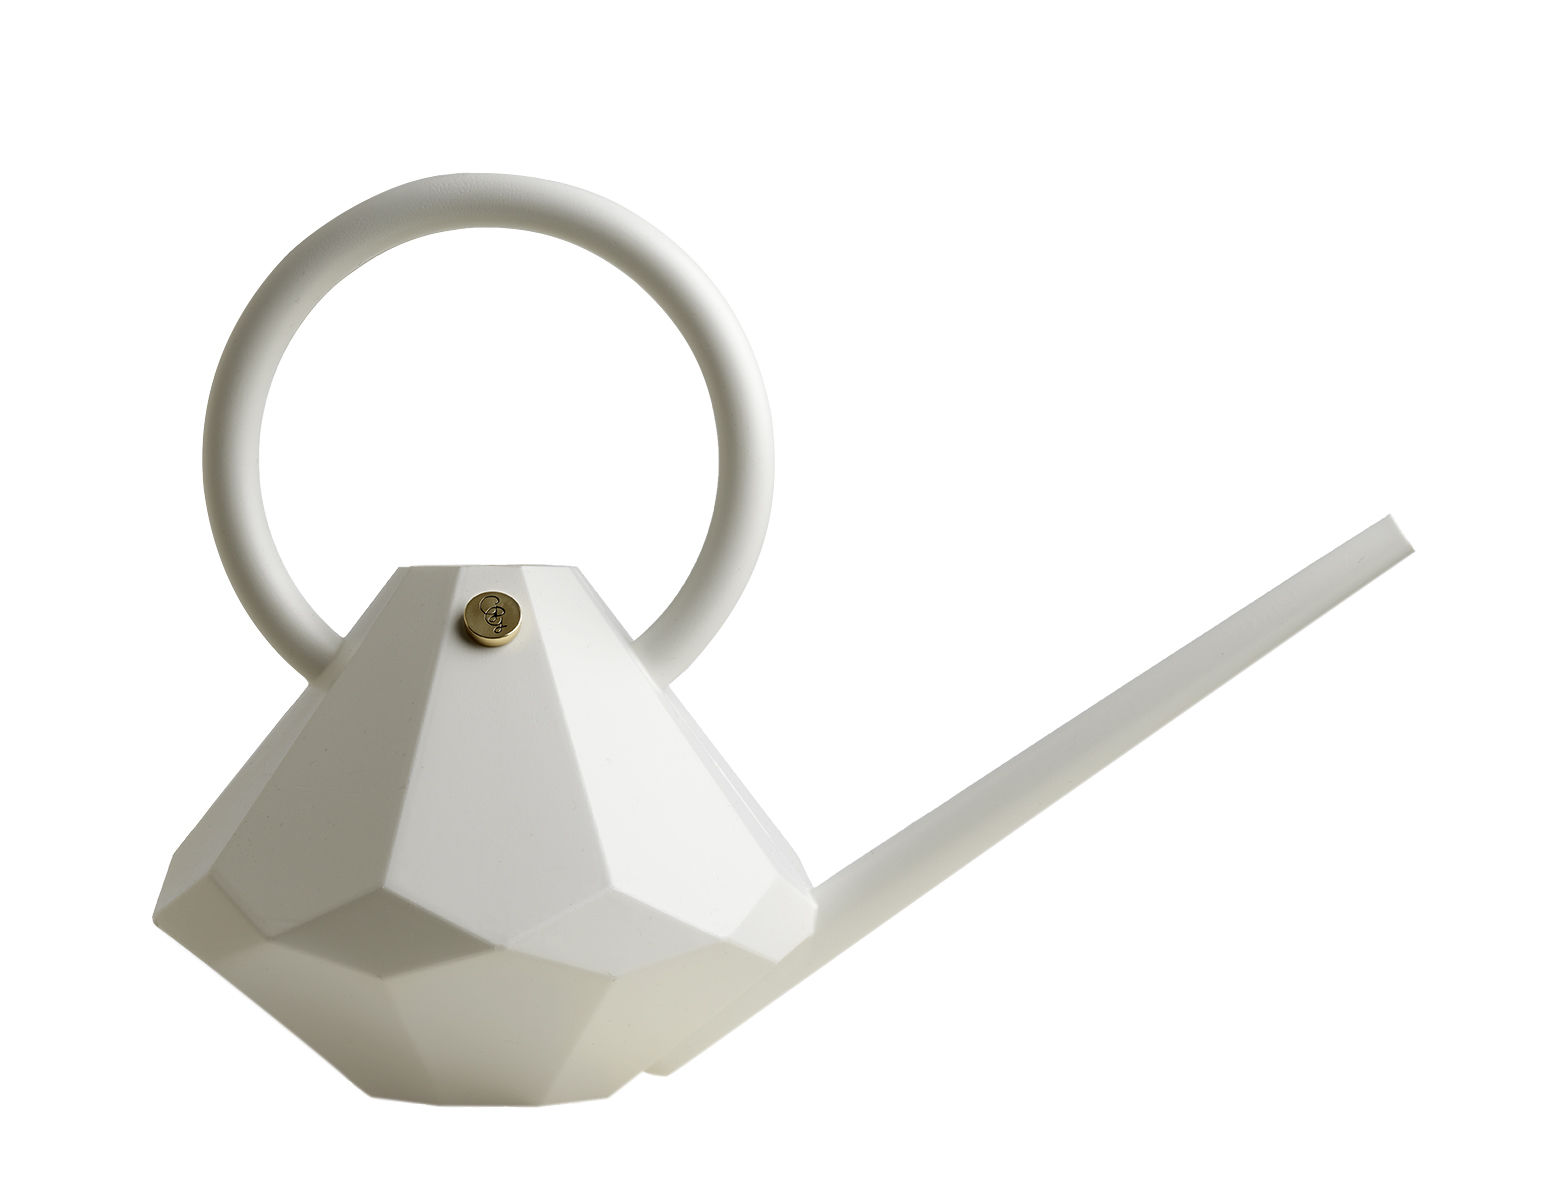 Outdoor - Pots & Plants - Diamond Small Watering can - Plastic - 4 L by Garden Glory - White pearl - Brass, Plastic